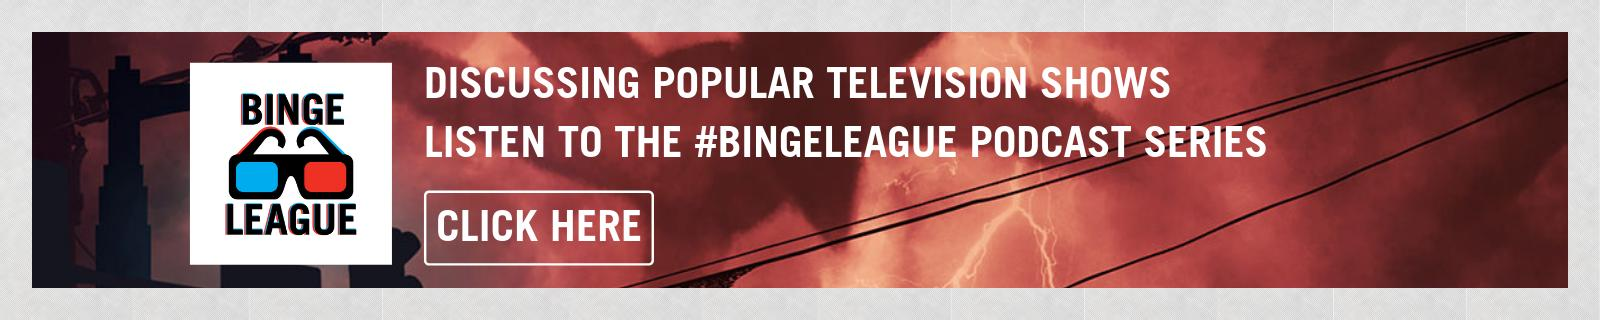 947 BINGE LEAGUE PODCAST SERIES